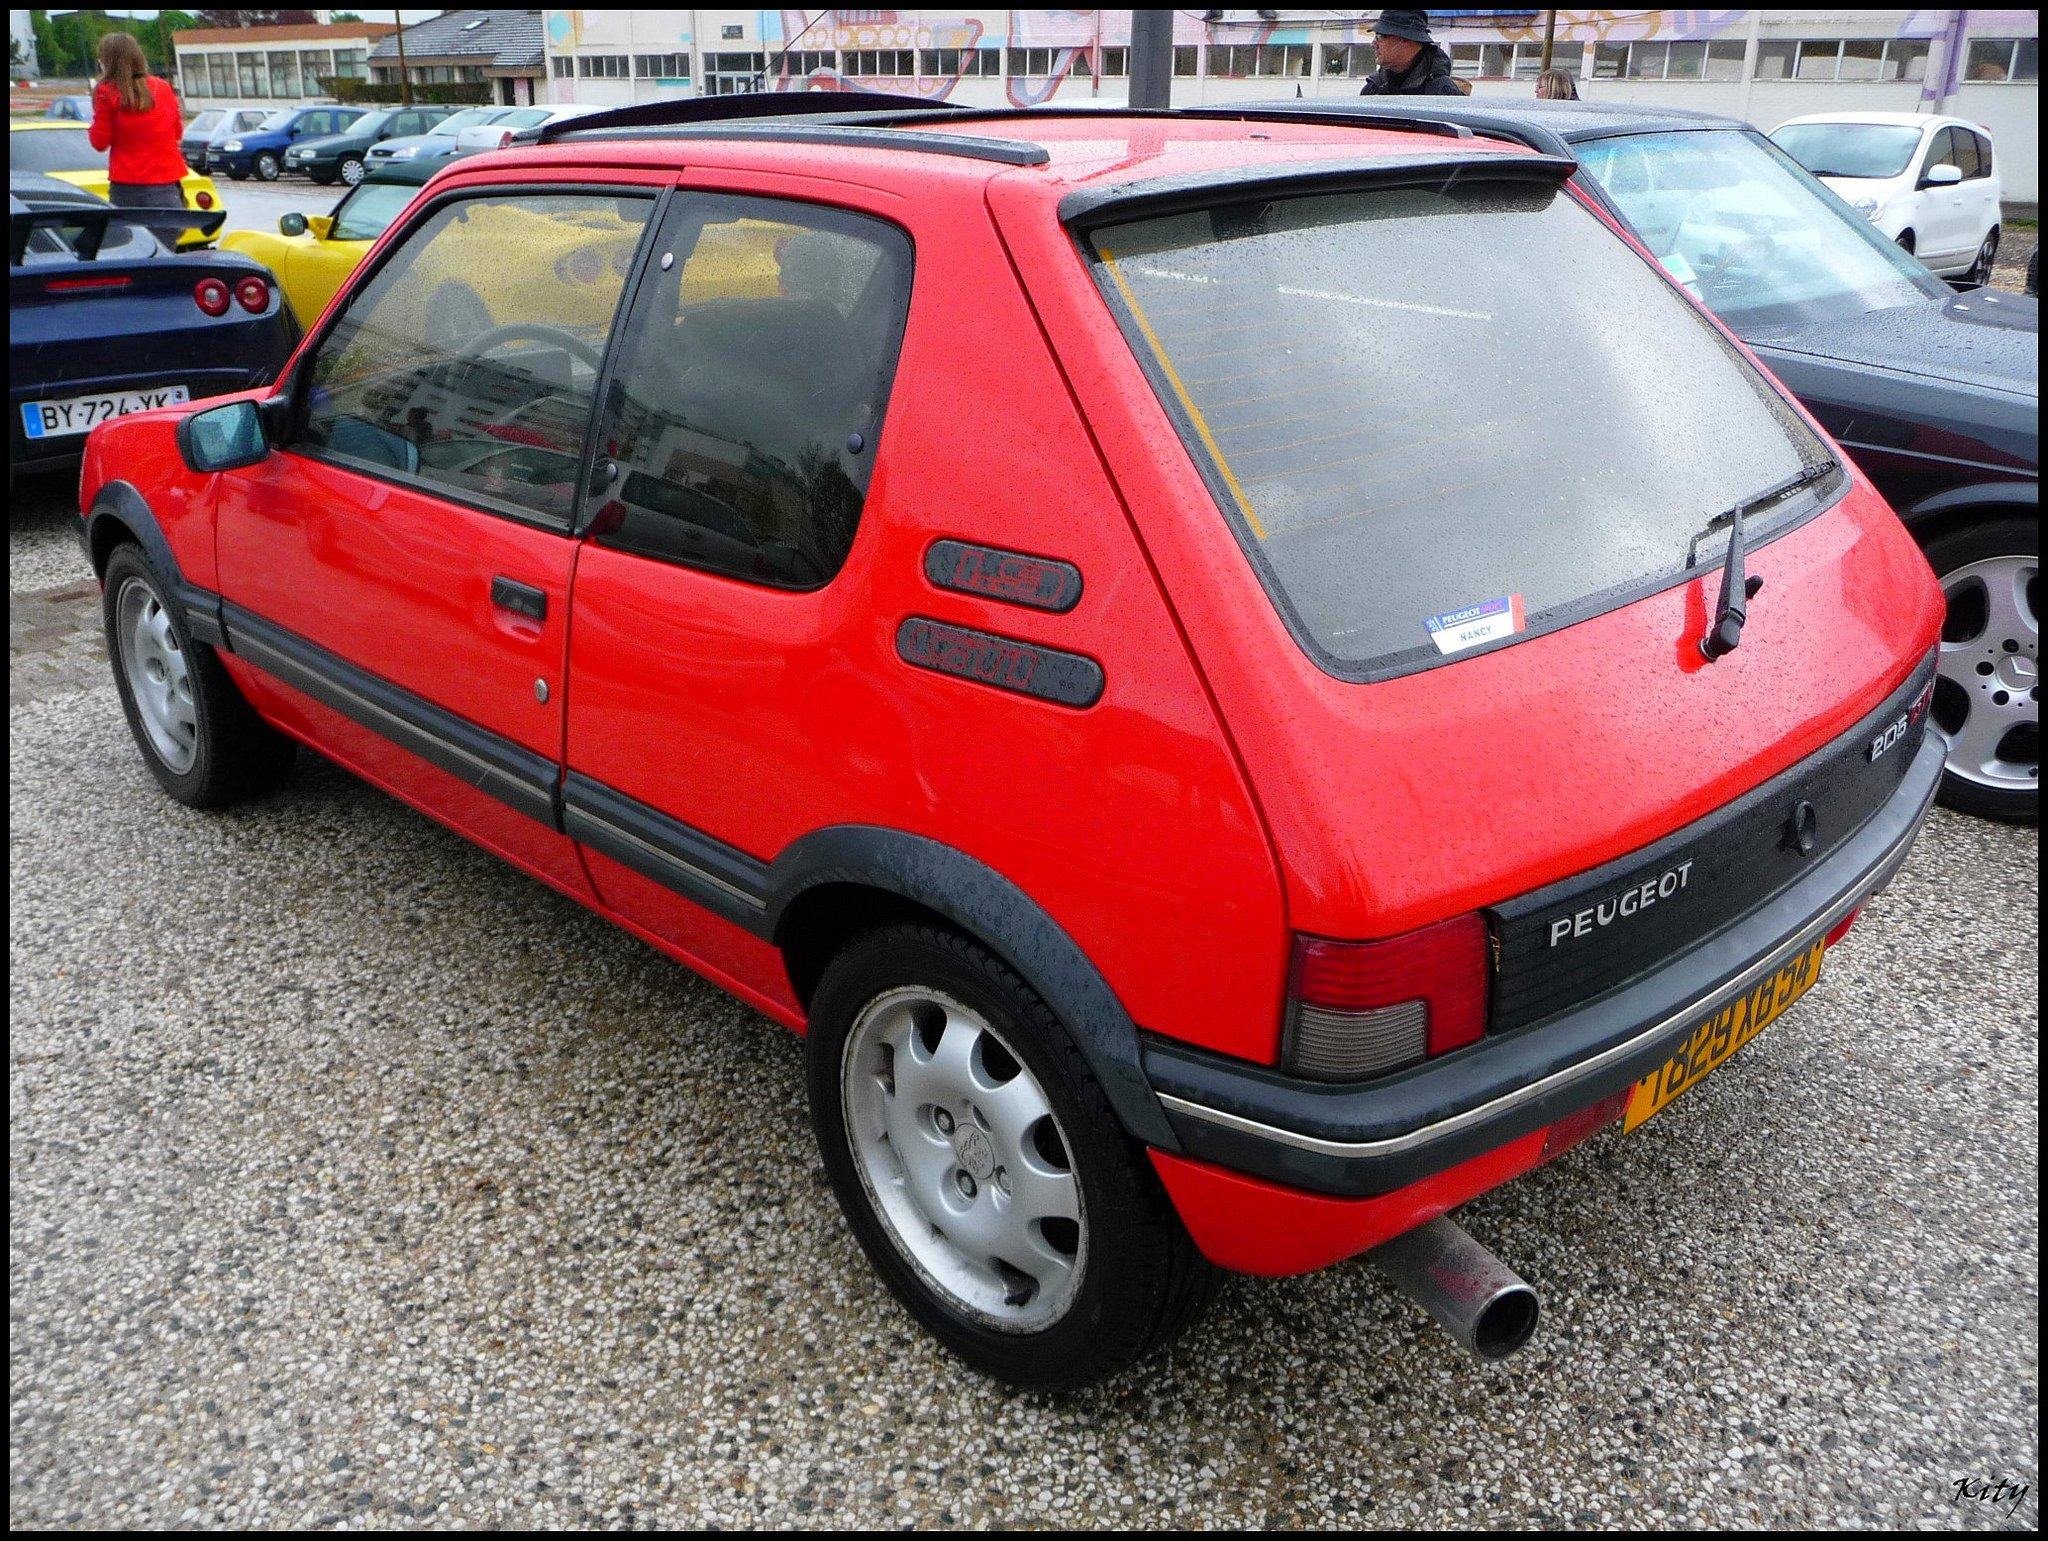 peugeot 205 gti cars coupe french rouge red wallpaper 2048x1541 562508 wallpaperup. Black Bedroom Furniture Sets. Home Design Ideas